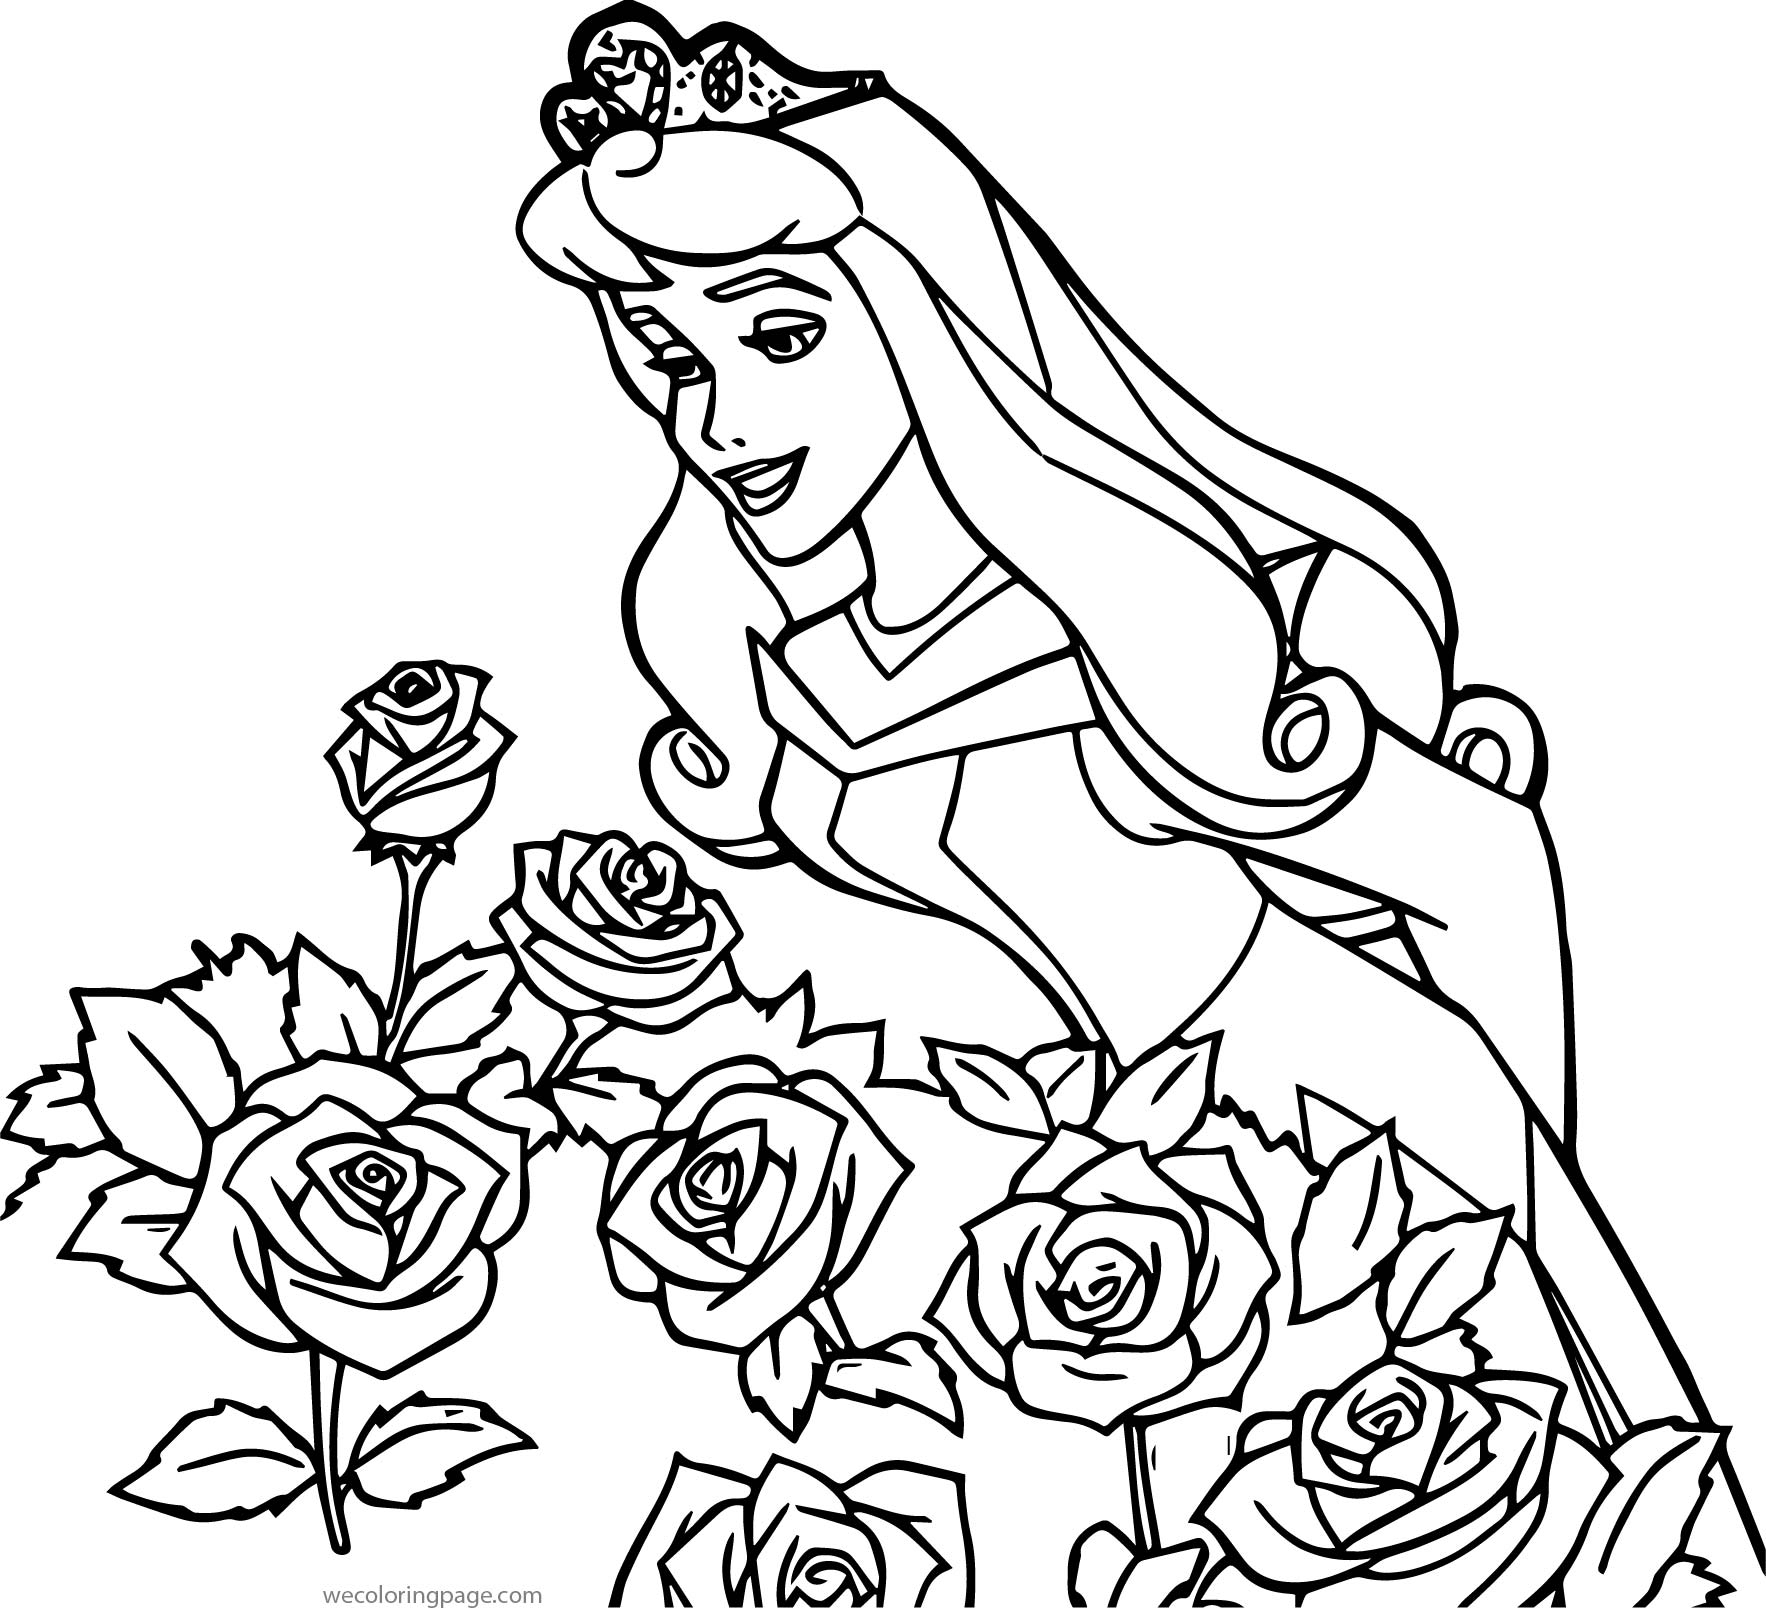 1766x1610 New Disney Princess Coloring Pages Sleeping Beauty Prince Design